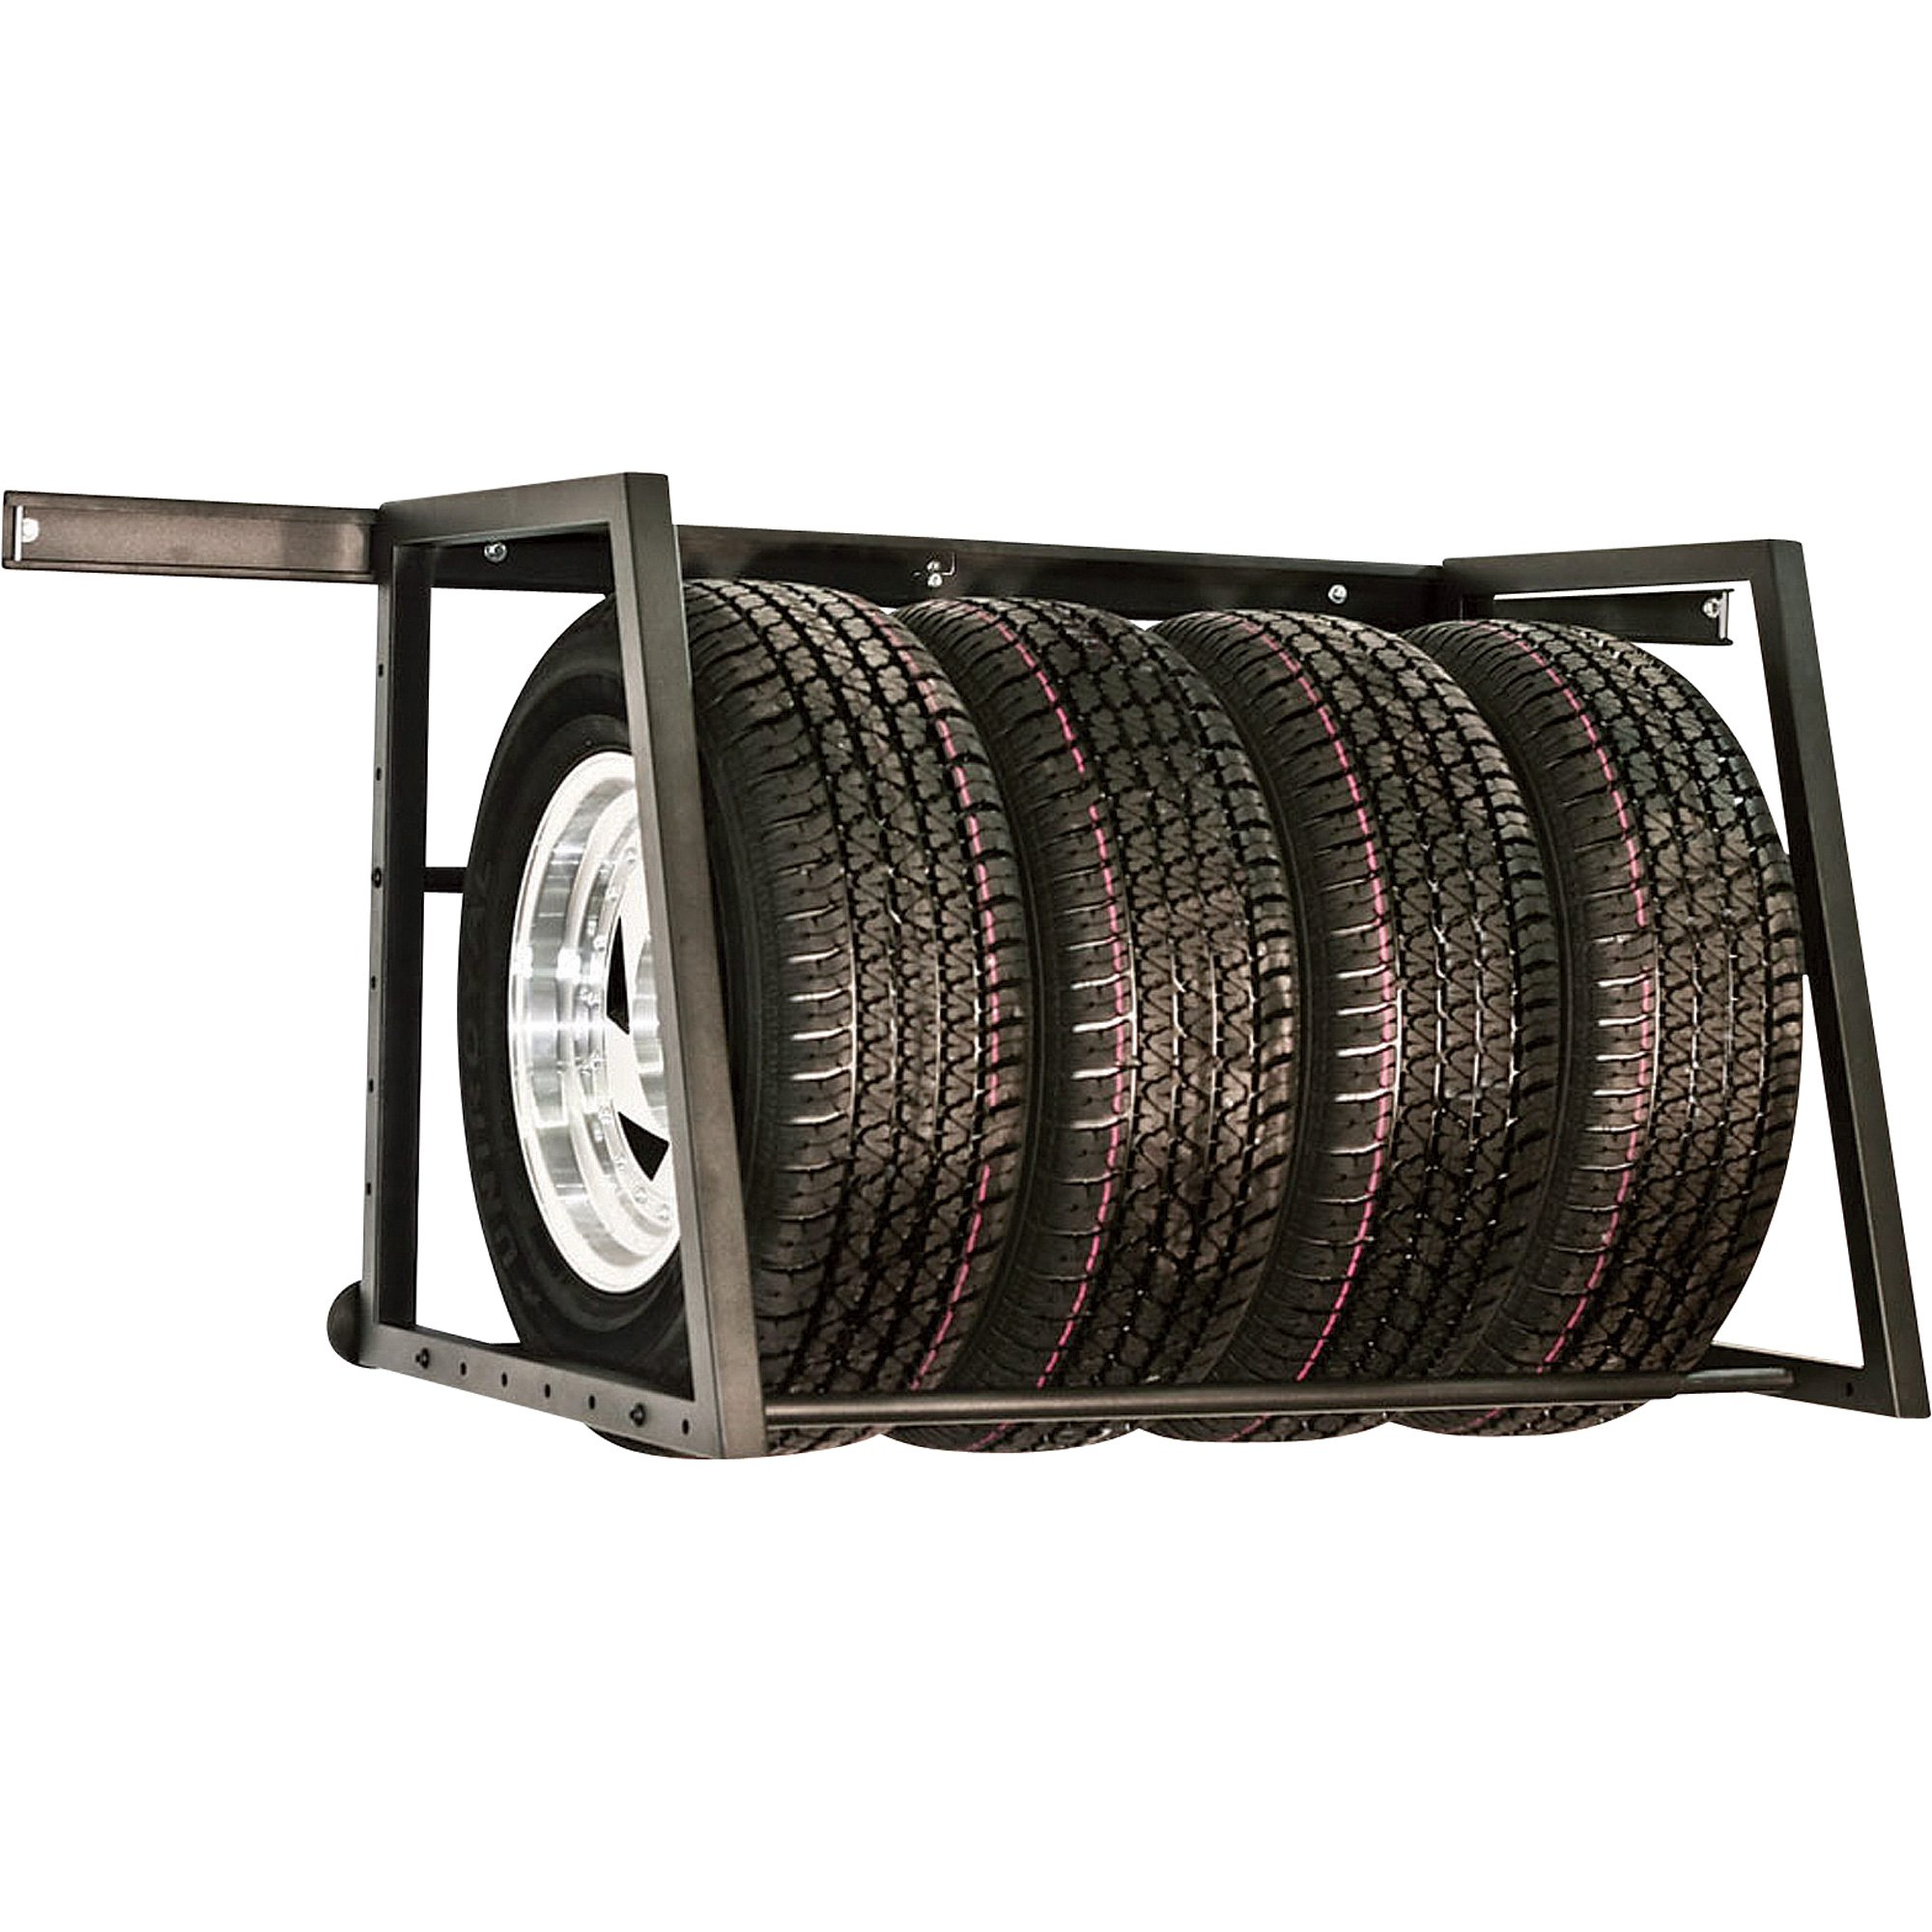 Phoenix Tire Storage Rack - 400-Lb. Capacity, Steel, Model# SPTSR